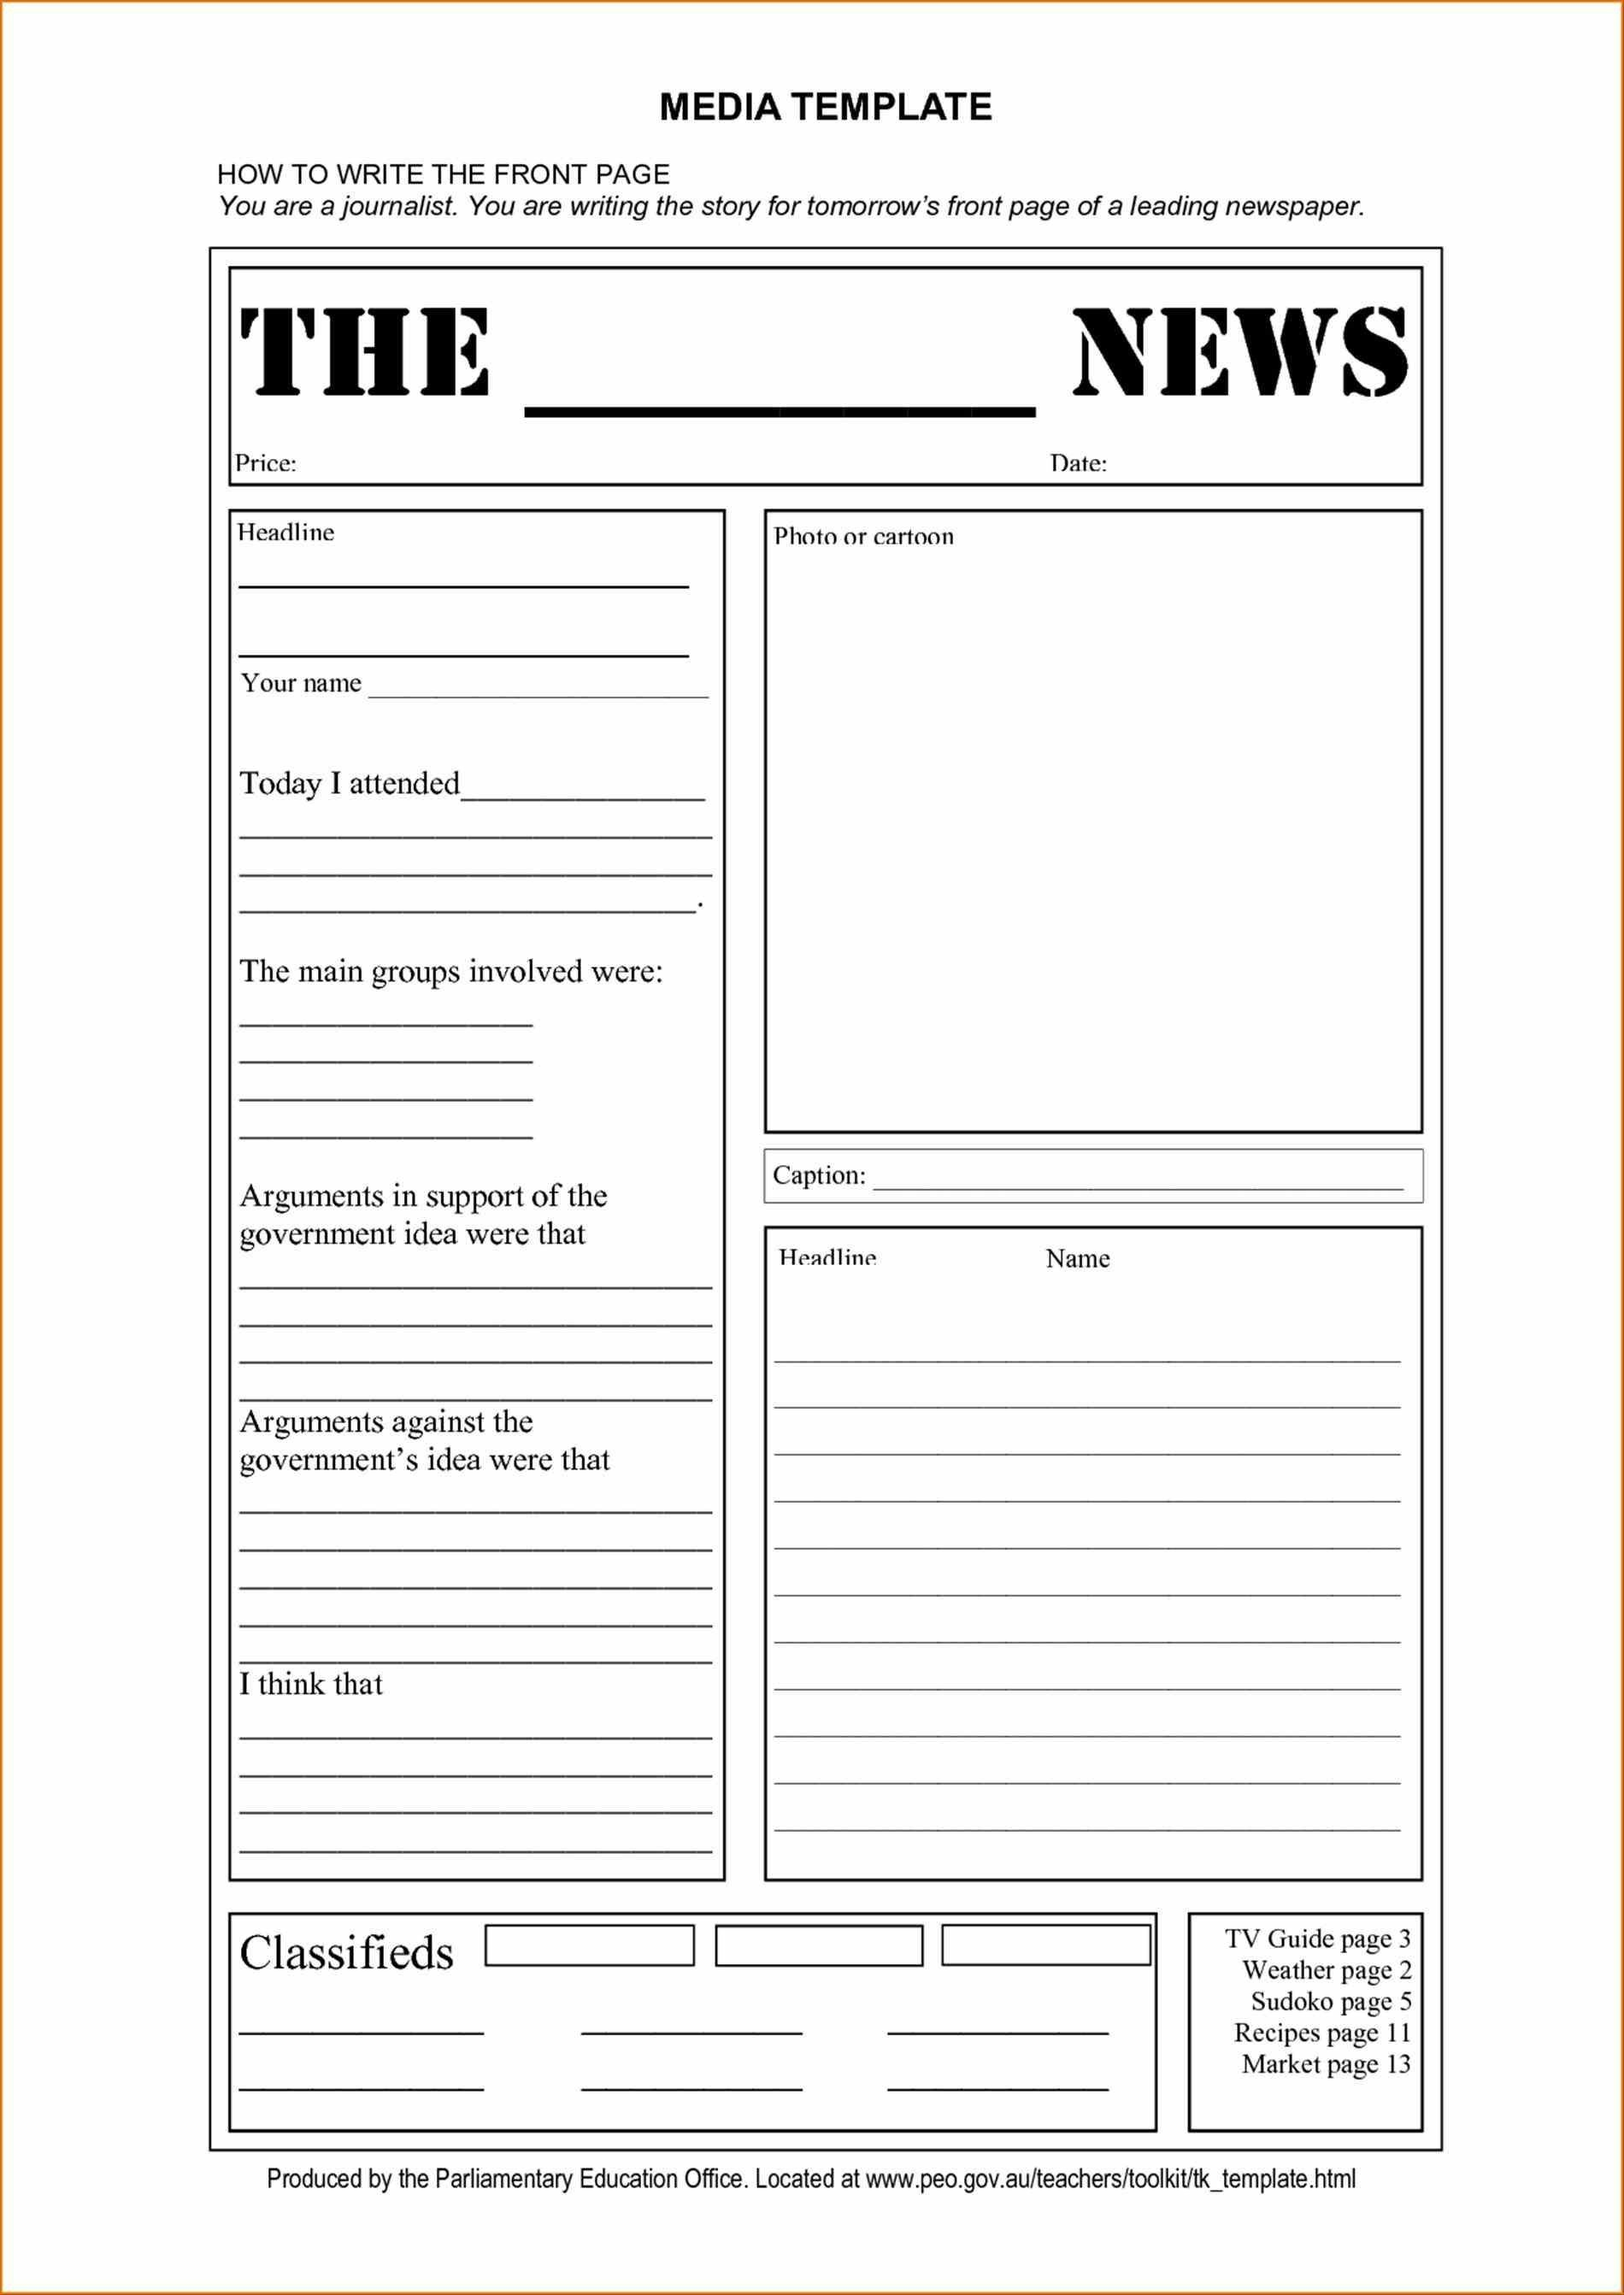 Blank Newspaper Templates Newspaper Template For Kids Printable On - Free Printable Newspaper Templates For Students